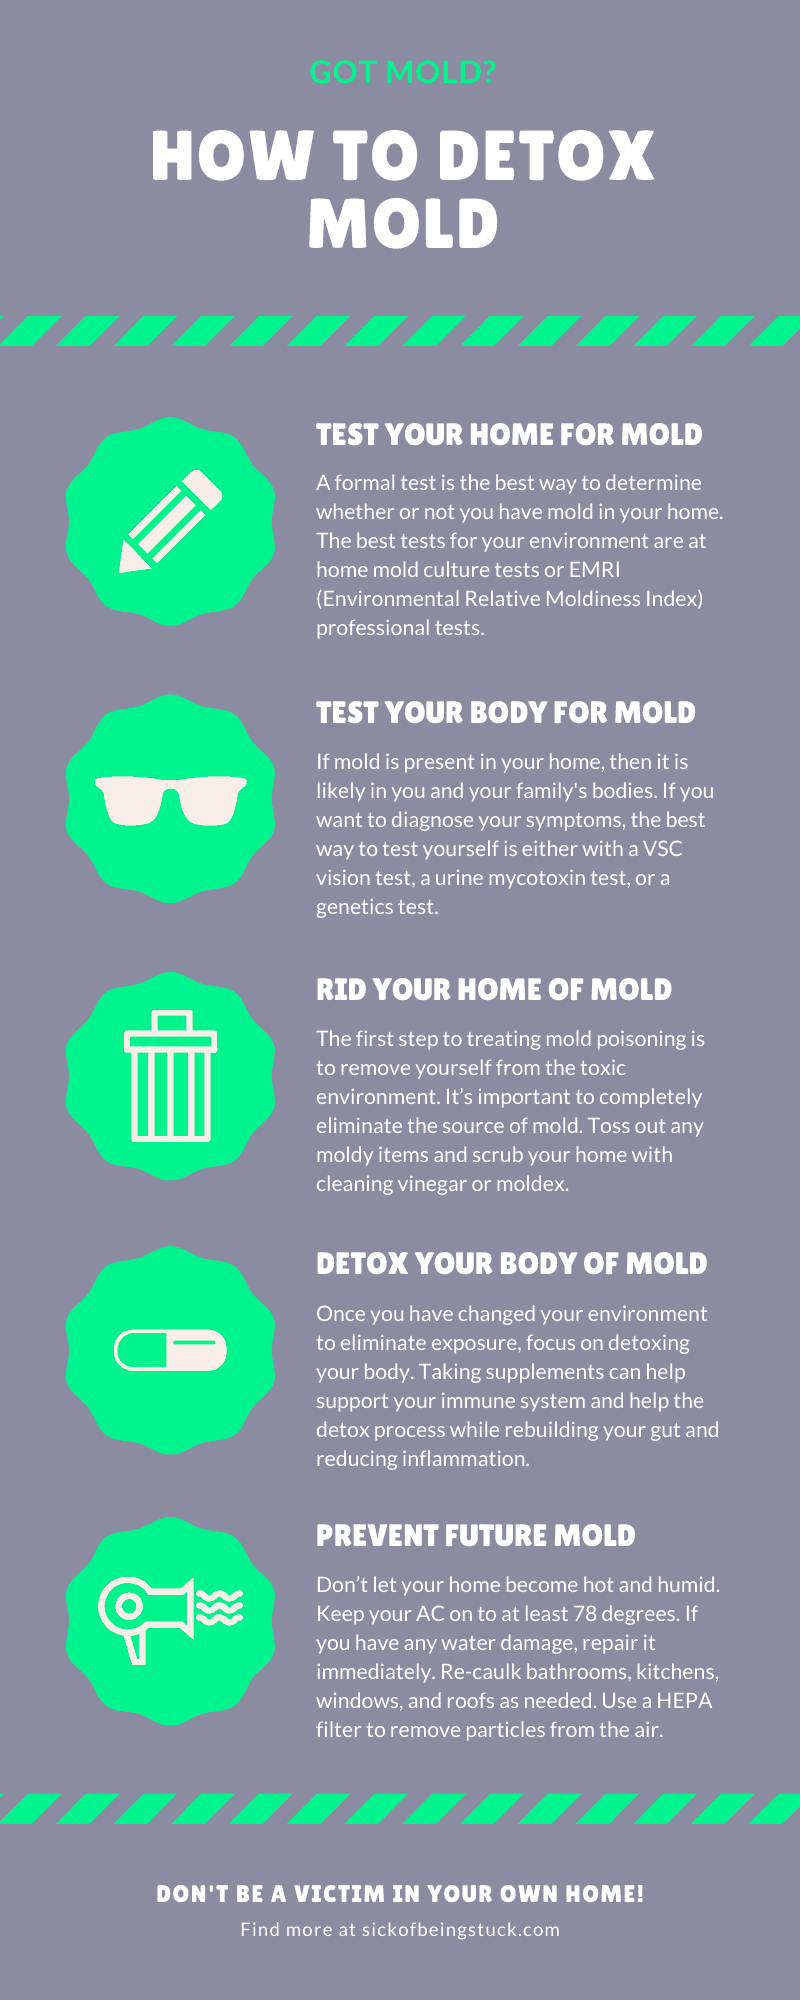 Follow these easy to follow steps to learn how to detox your body from mold.